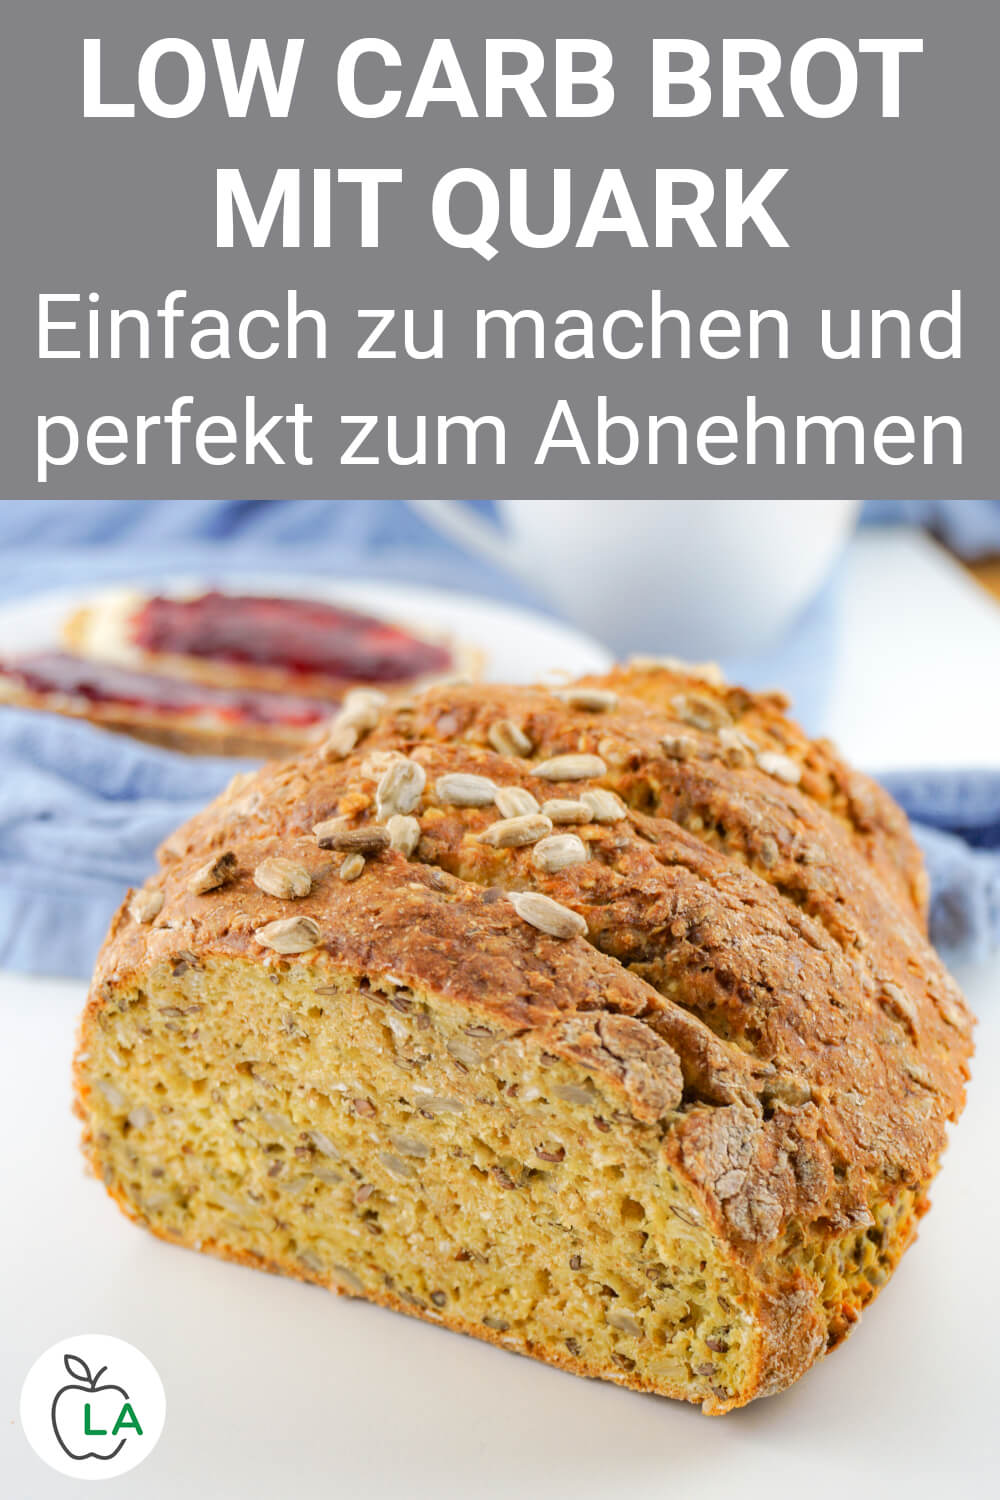 Low Carb Brot mit Quark